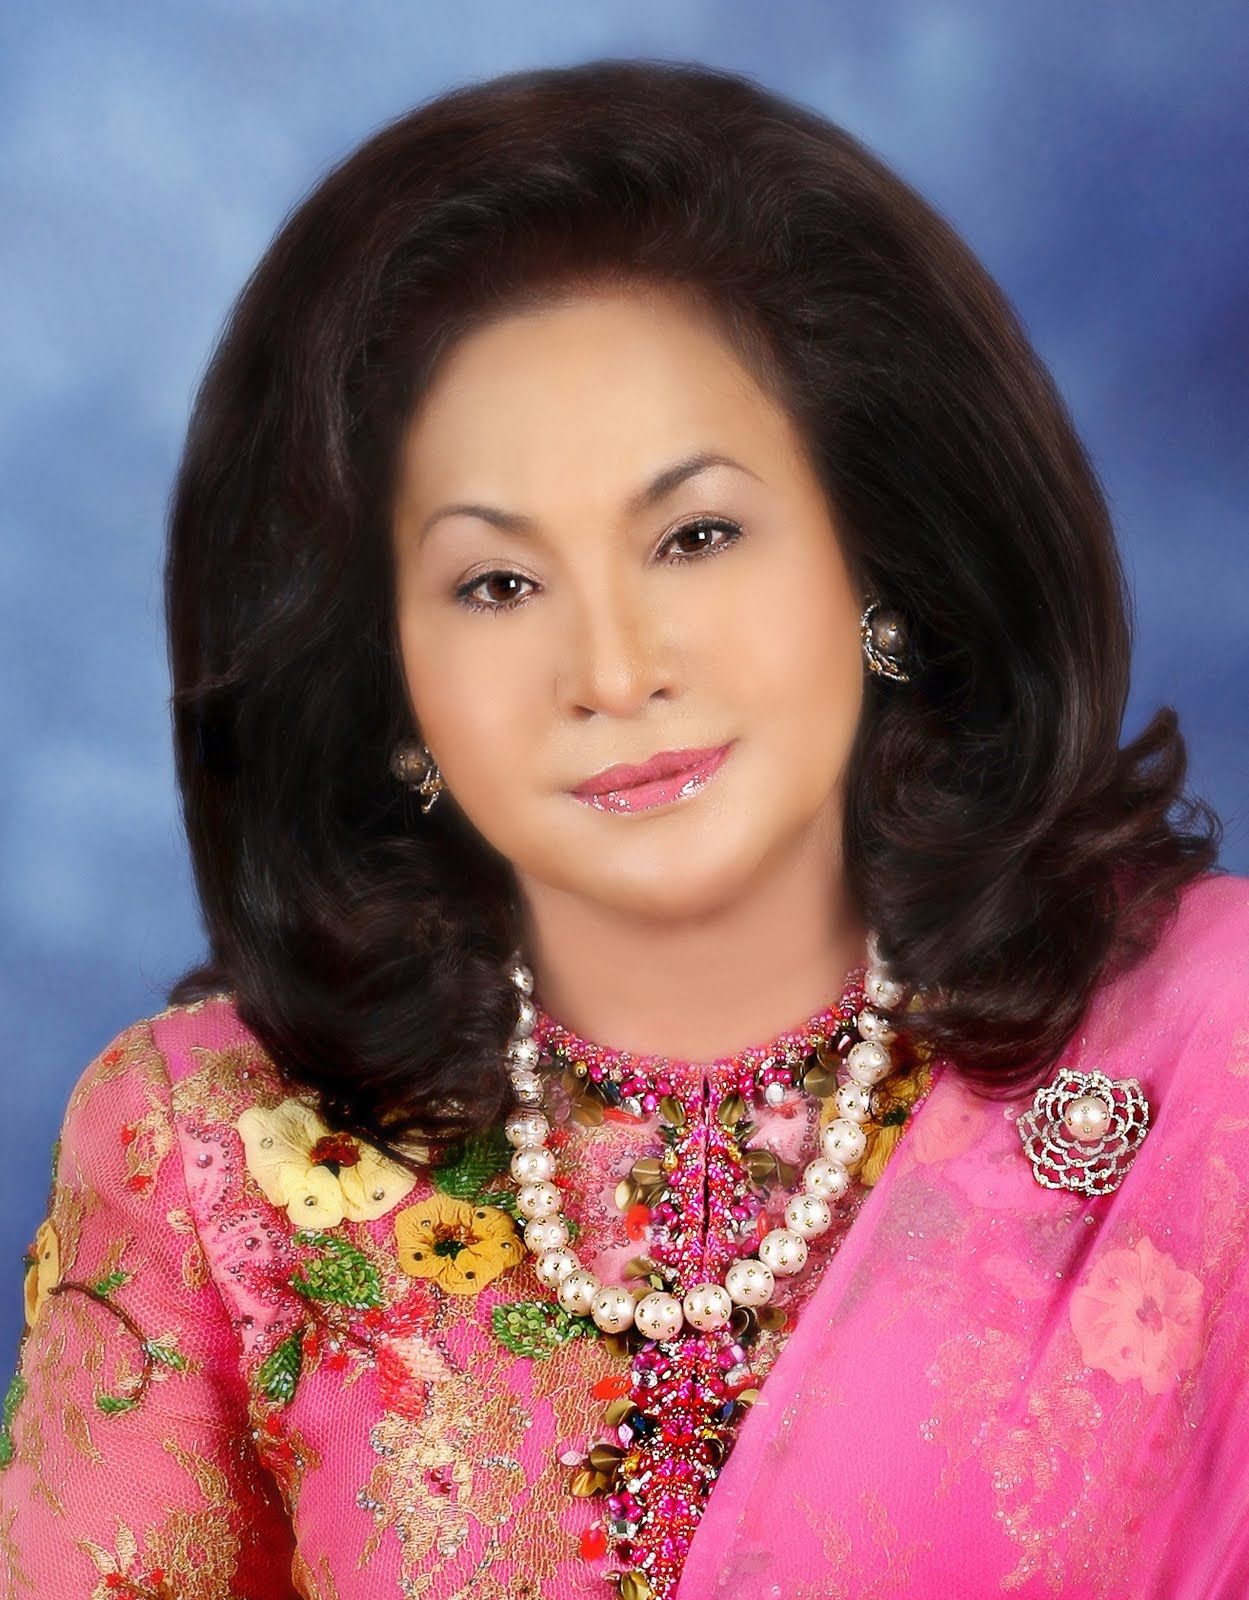 Datin Rosmah Photoshop